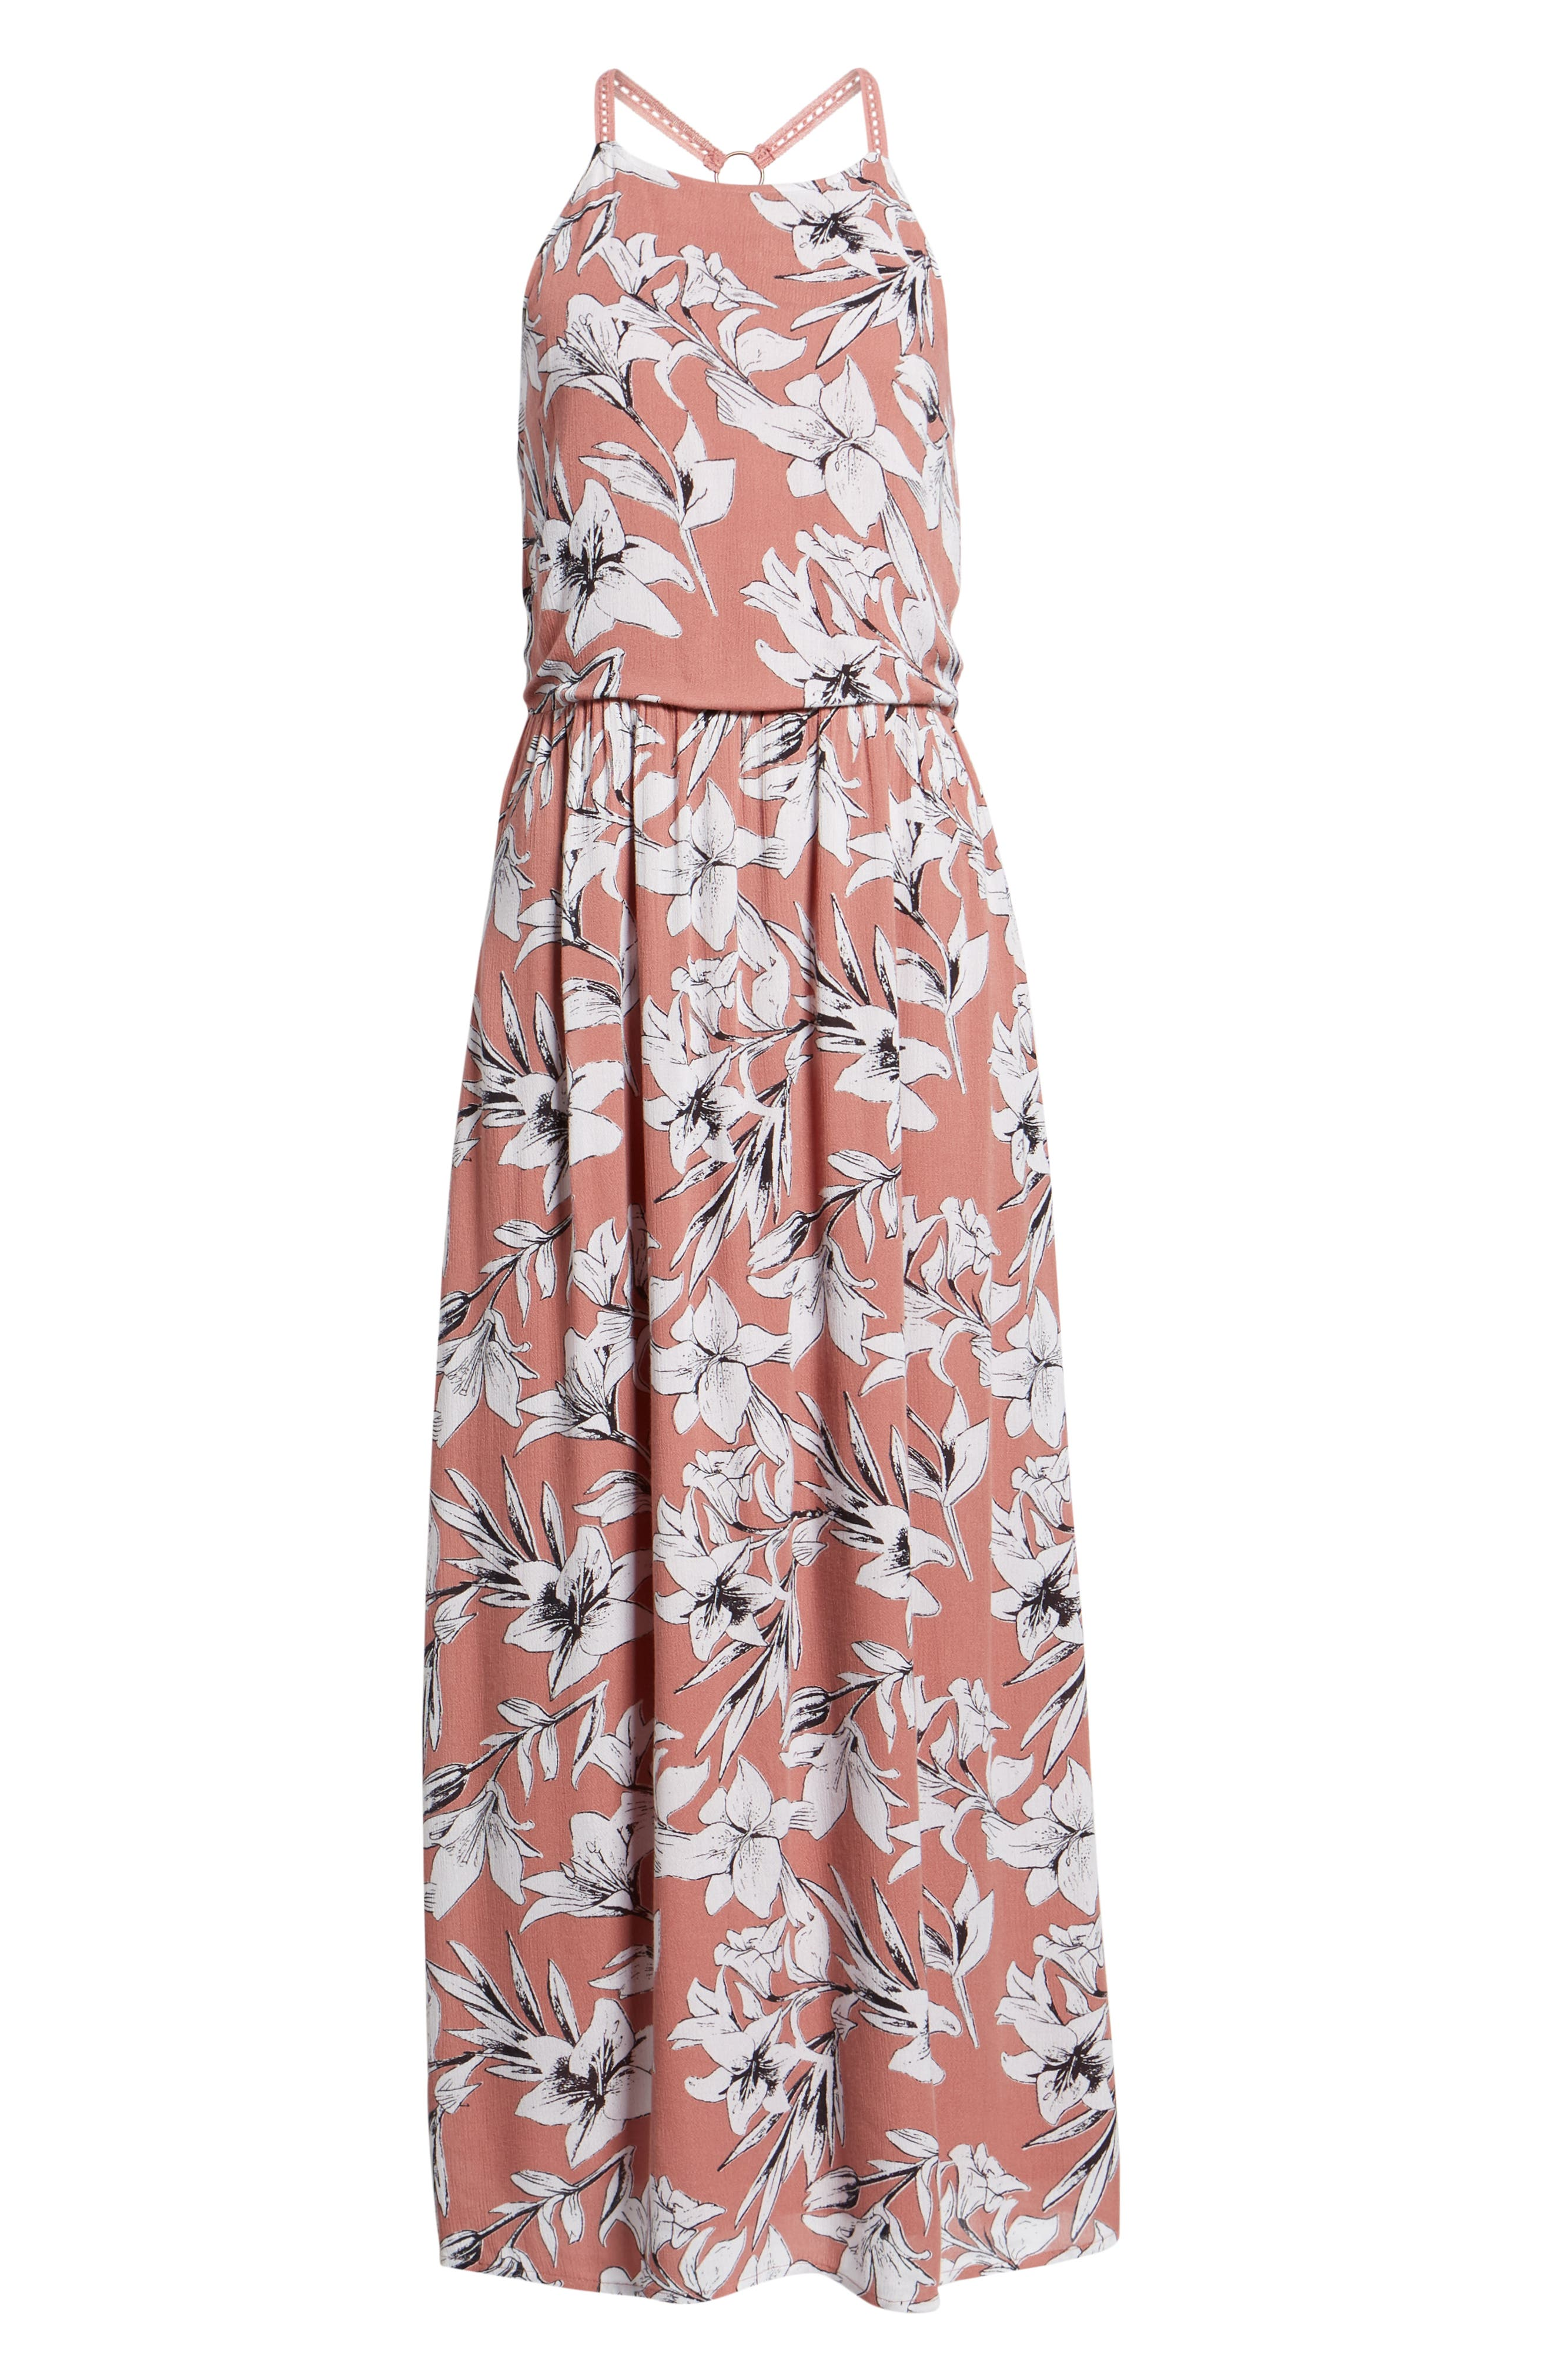 Pavement Border Maxi Dress,                             Alternate thumbnail 7, color,                             WITHERED ROSE LILY HOUSE